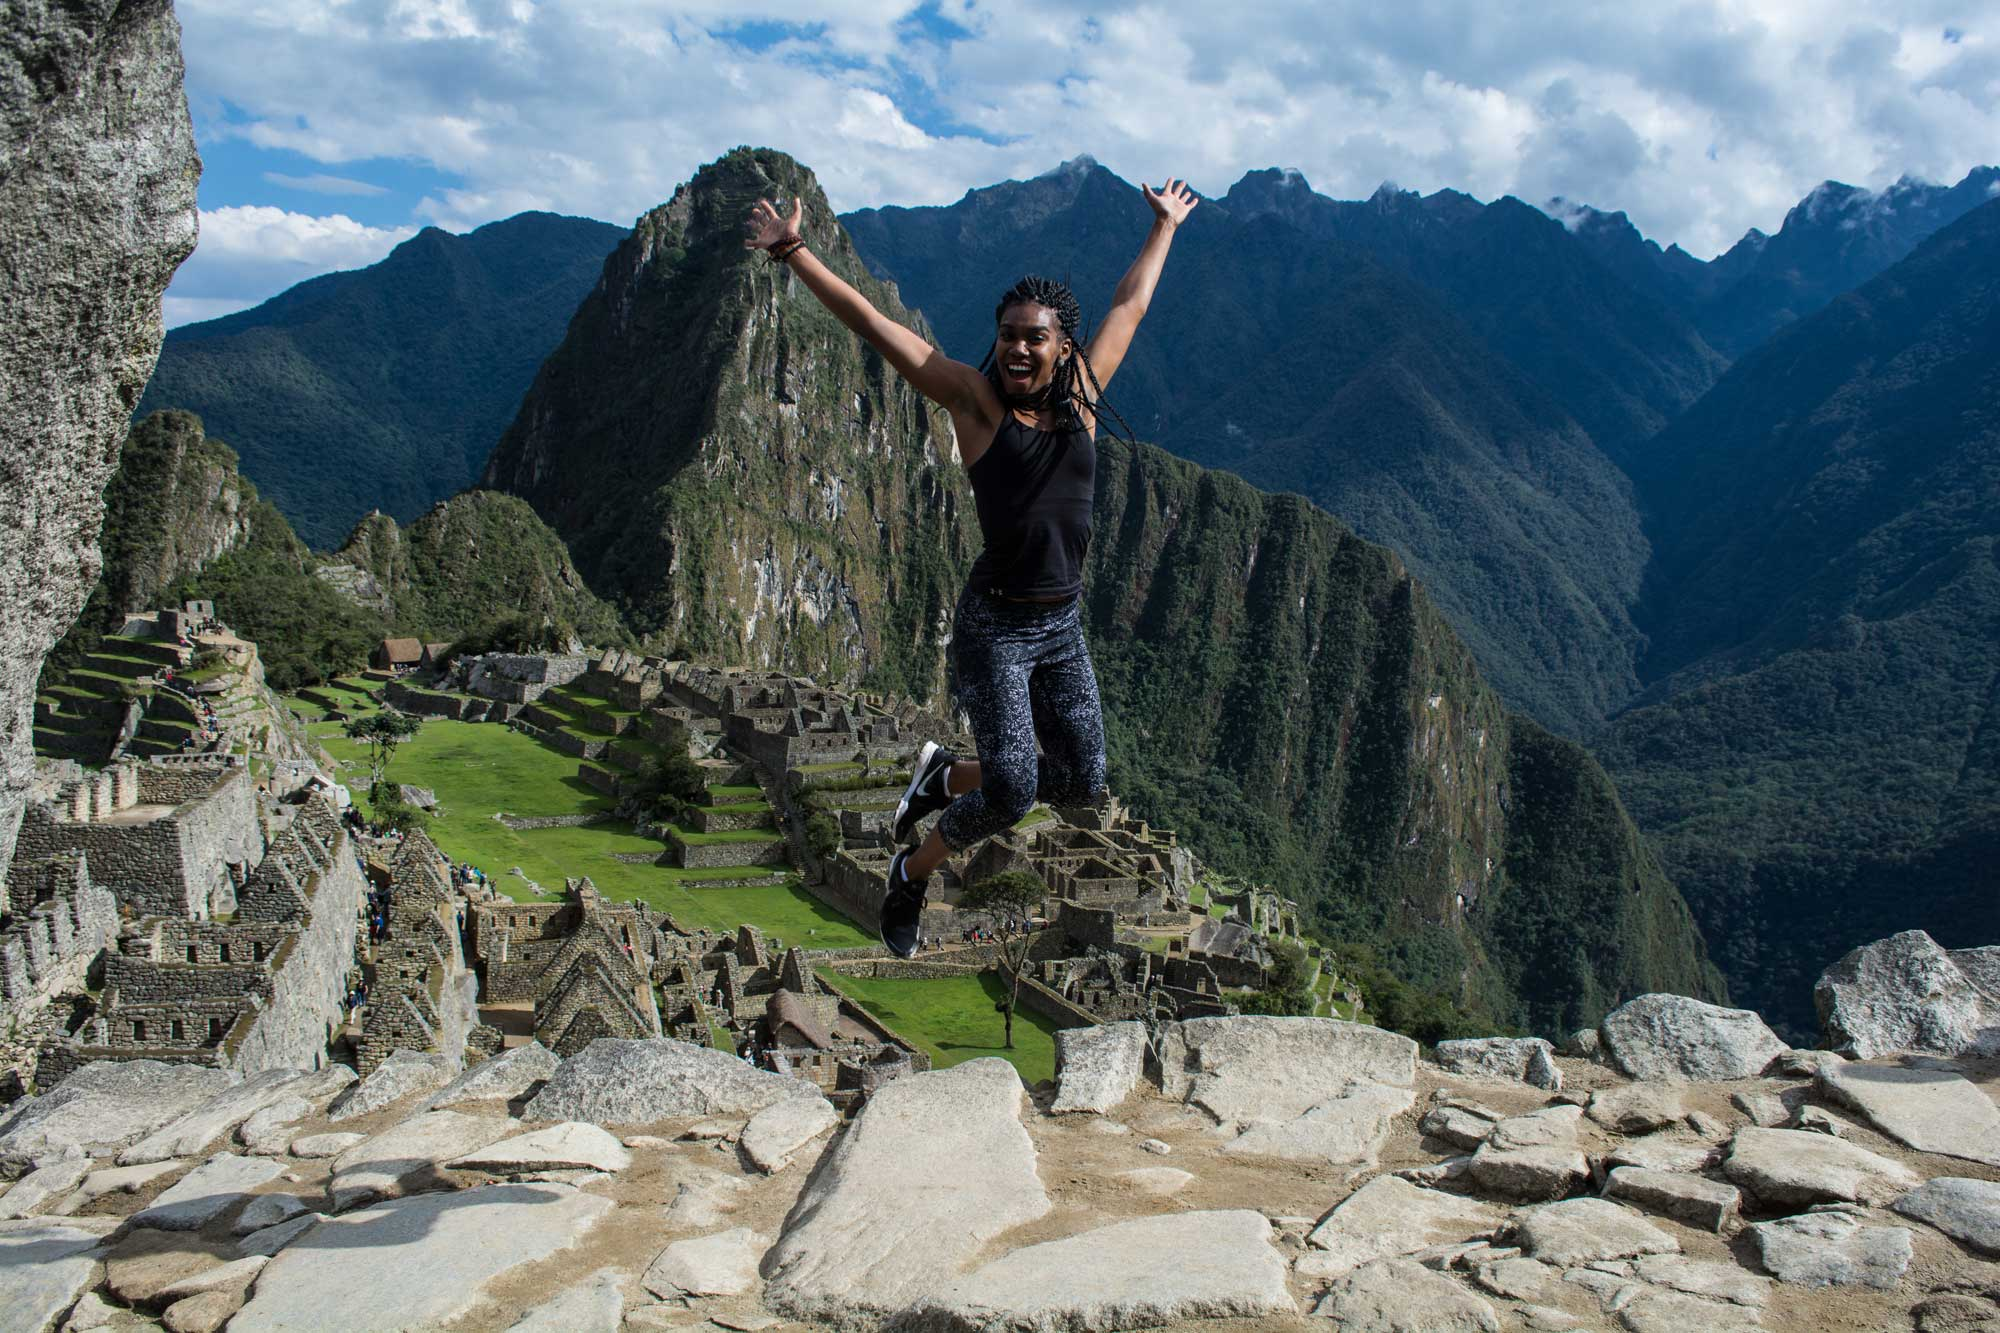 Kristen-Gray-2014-Adventure-Travel-Photo-Machu-Picchu